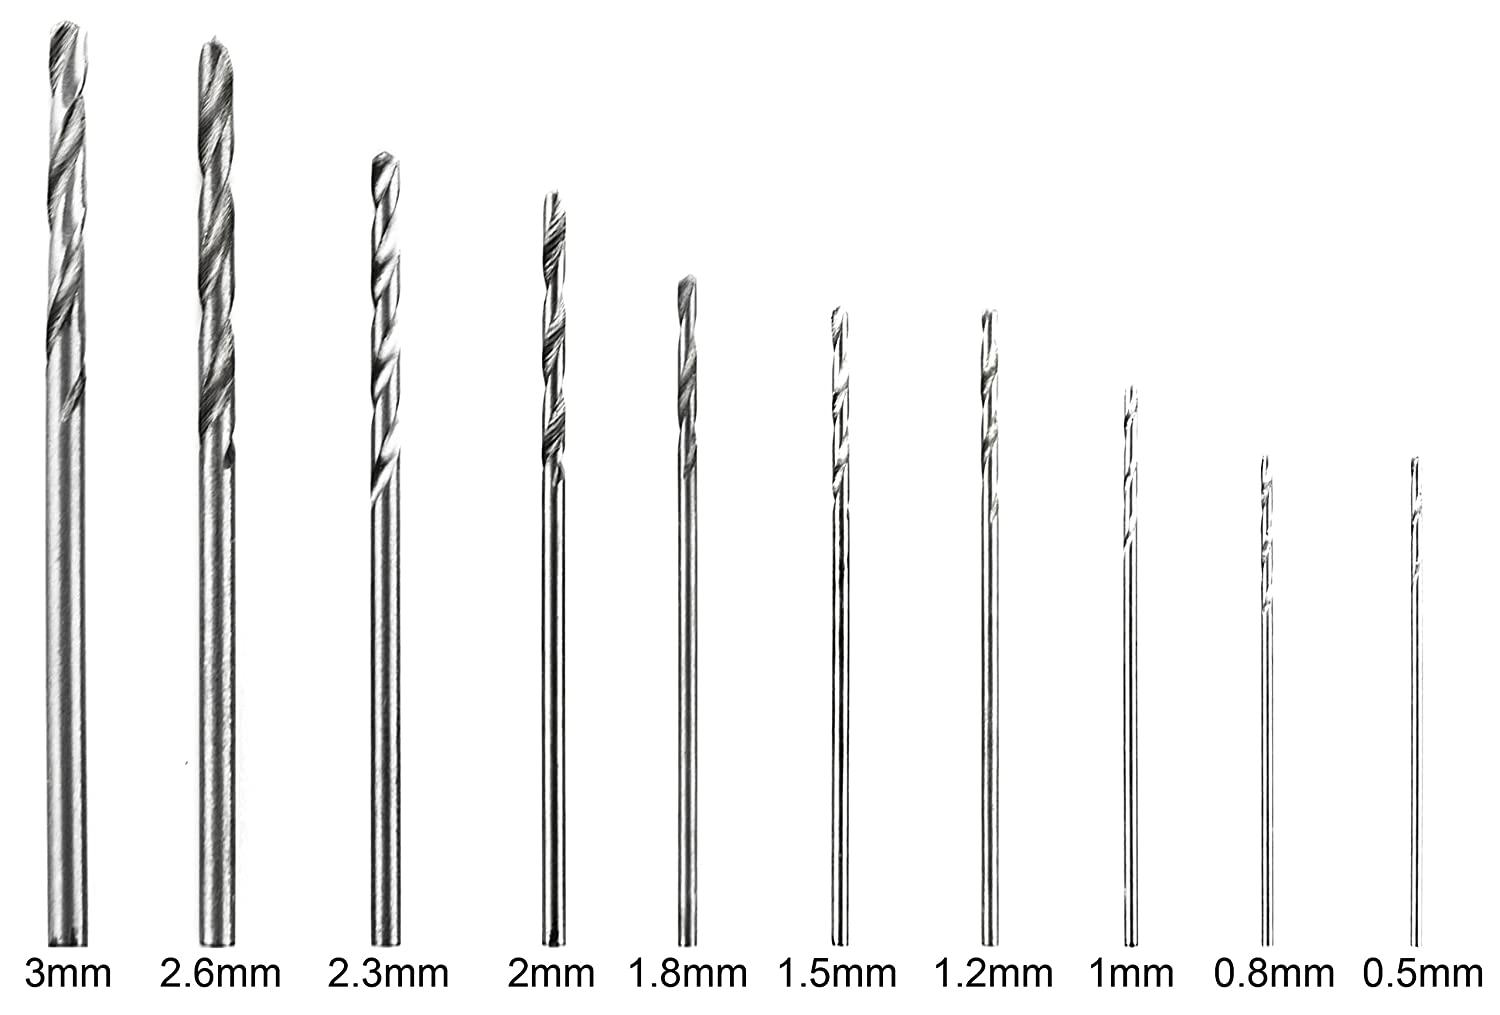 Bastex Precision Pin Vise Hand Drill with Twist Bits Set of 11 Pieces Great for models and Hobby.